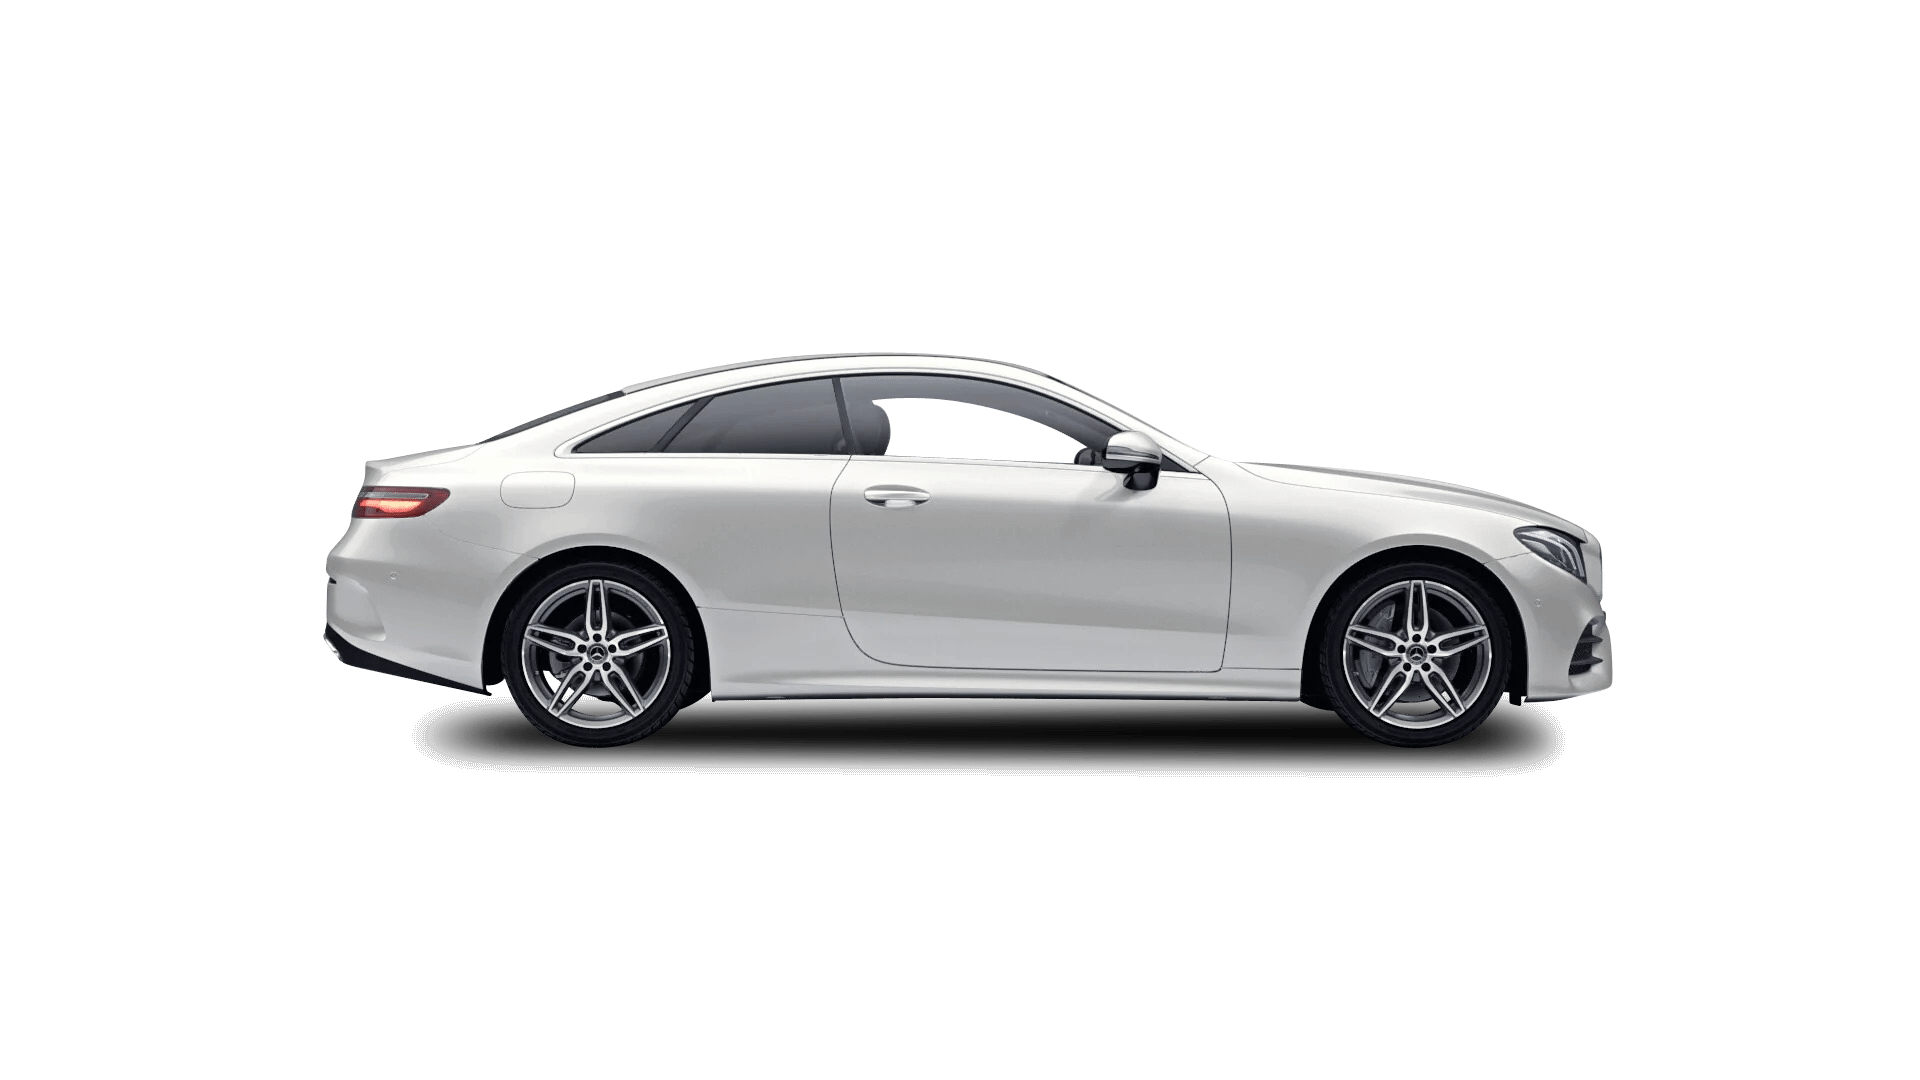 https://bluesky-cogcms.cdn.imgeng.in/media/35318/e-class-coupe-amg-line-premium.png